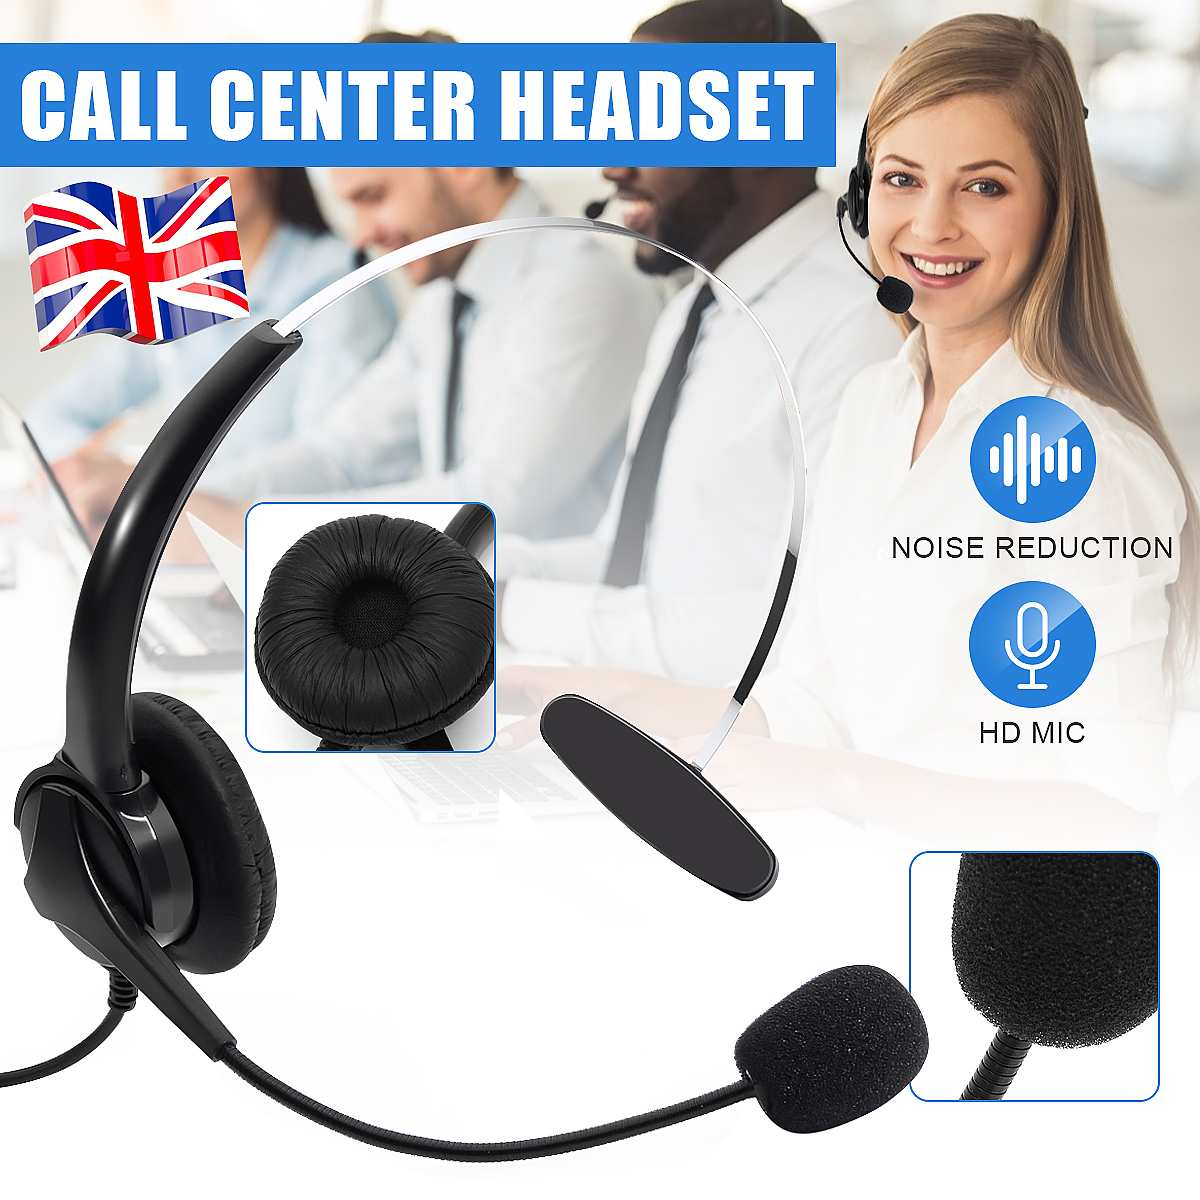 RJ11 Telephone Headset With Microphone Noise Cancelling Interphone Adjustable Microphone Earphone Headphone For Call Center